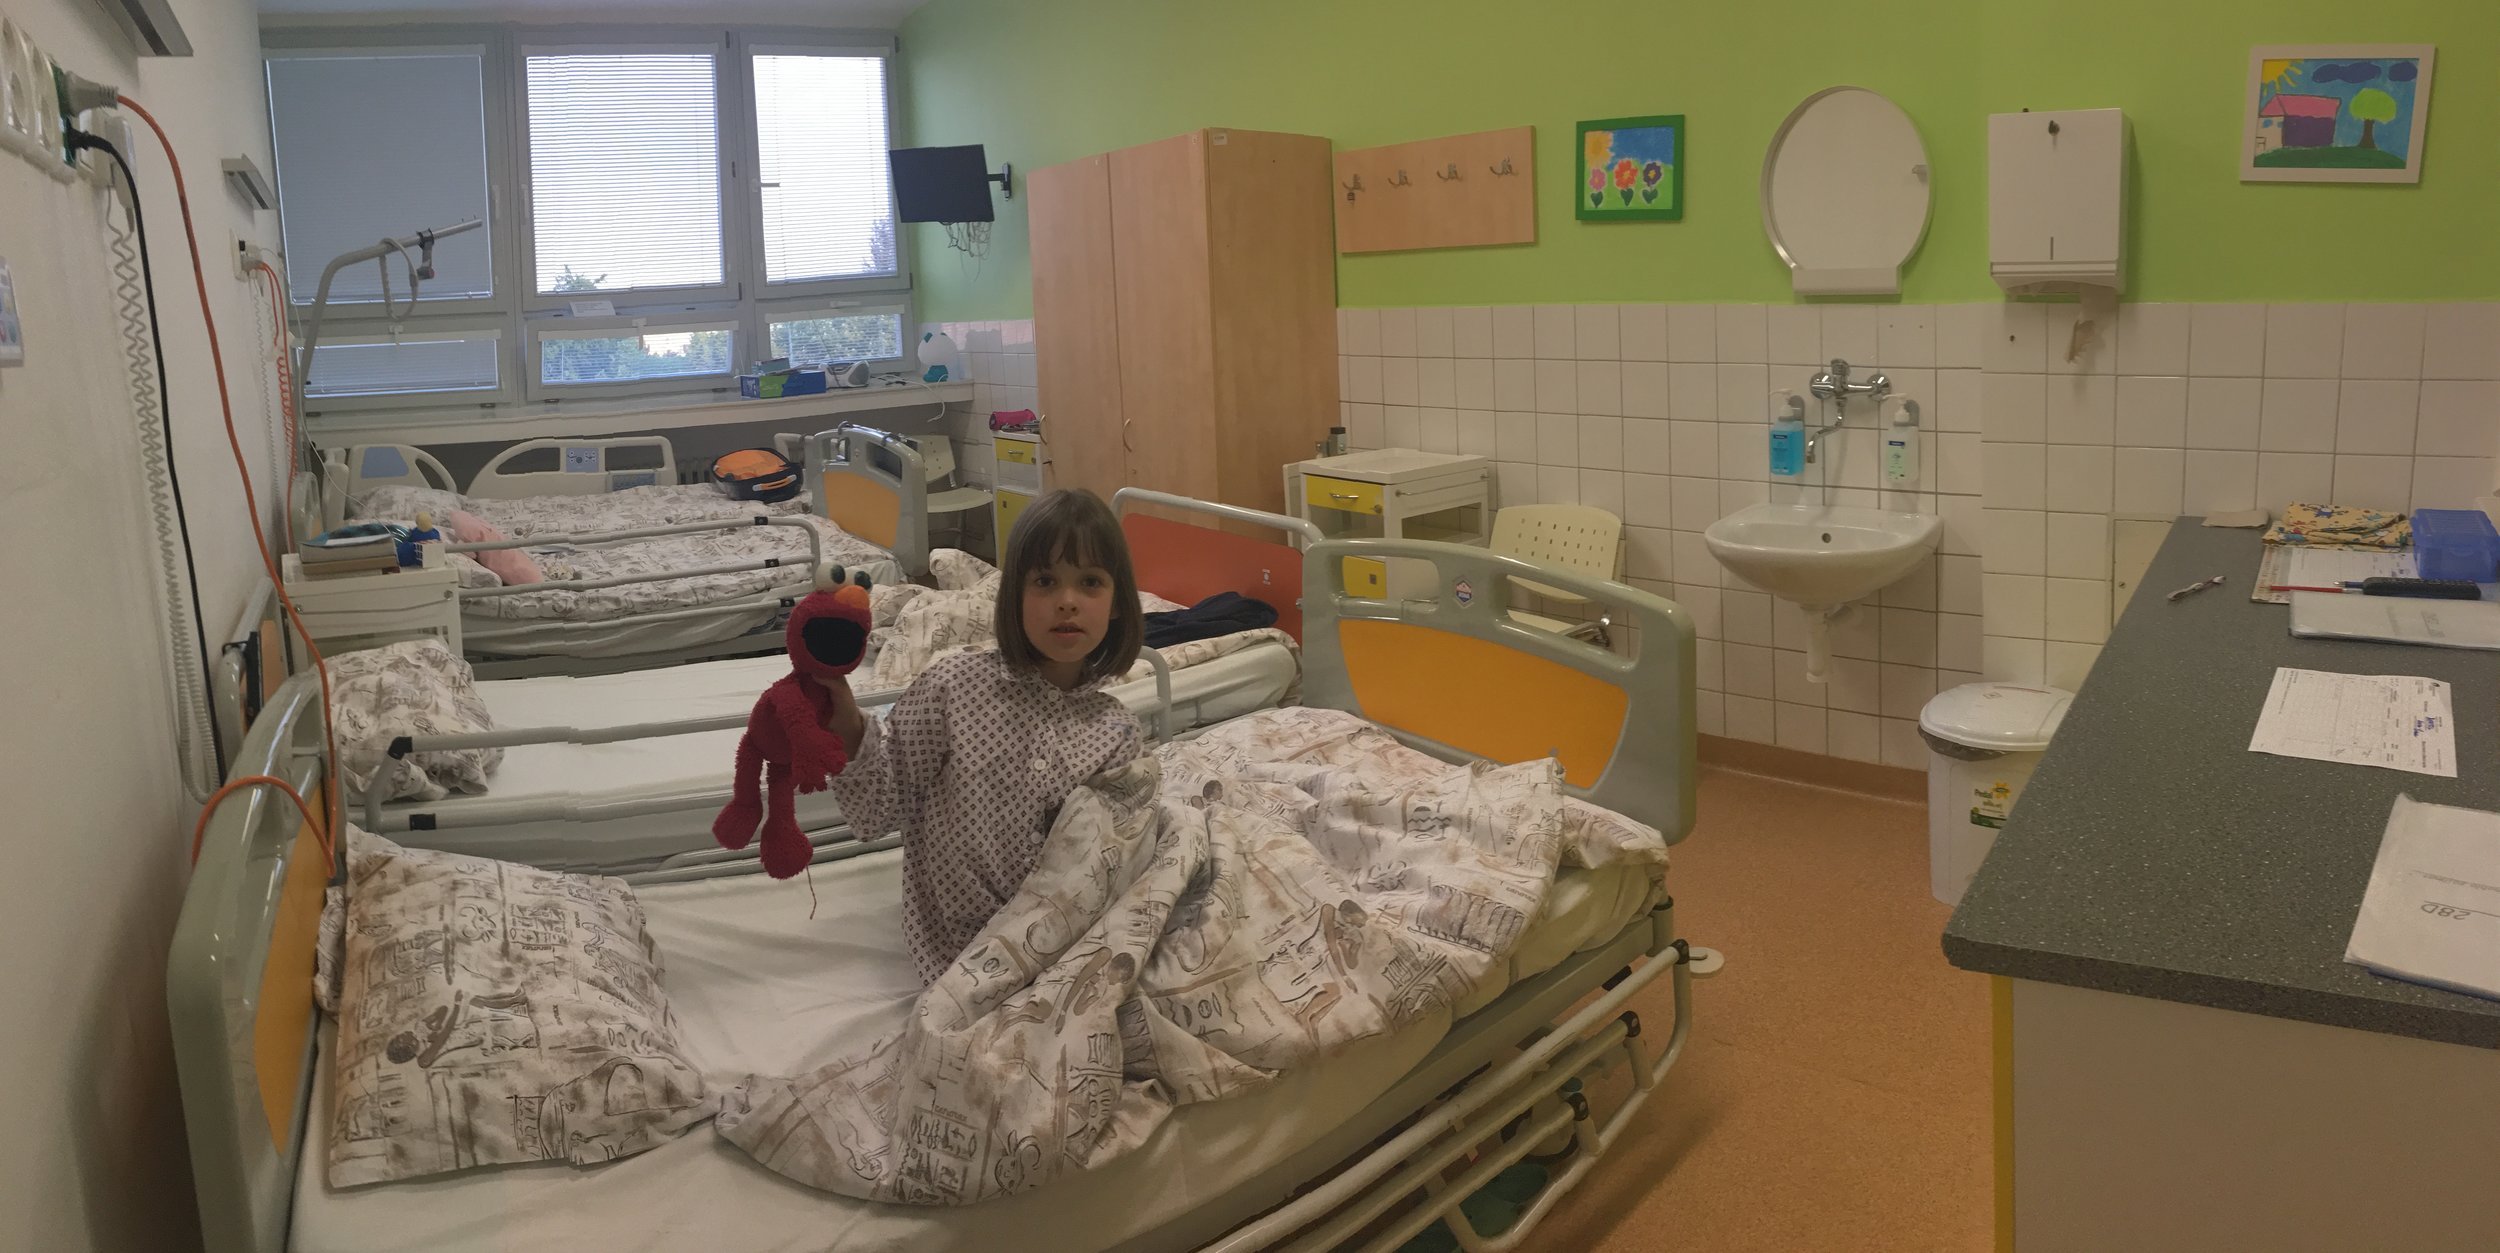 This is the hospital room Lisa and Nora stayed at with another mother and her daughter